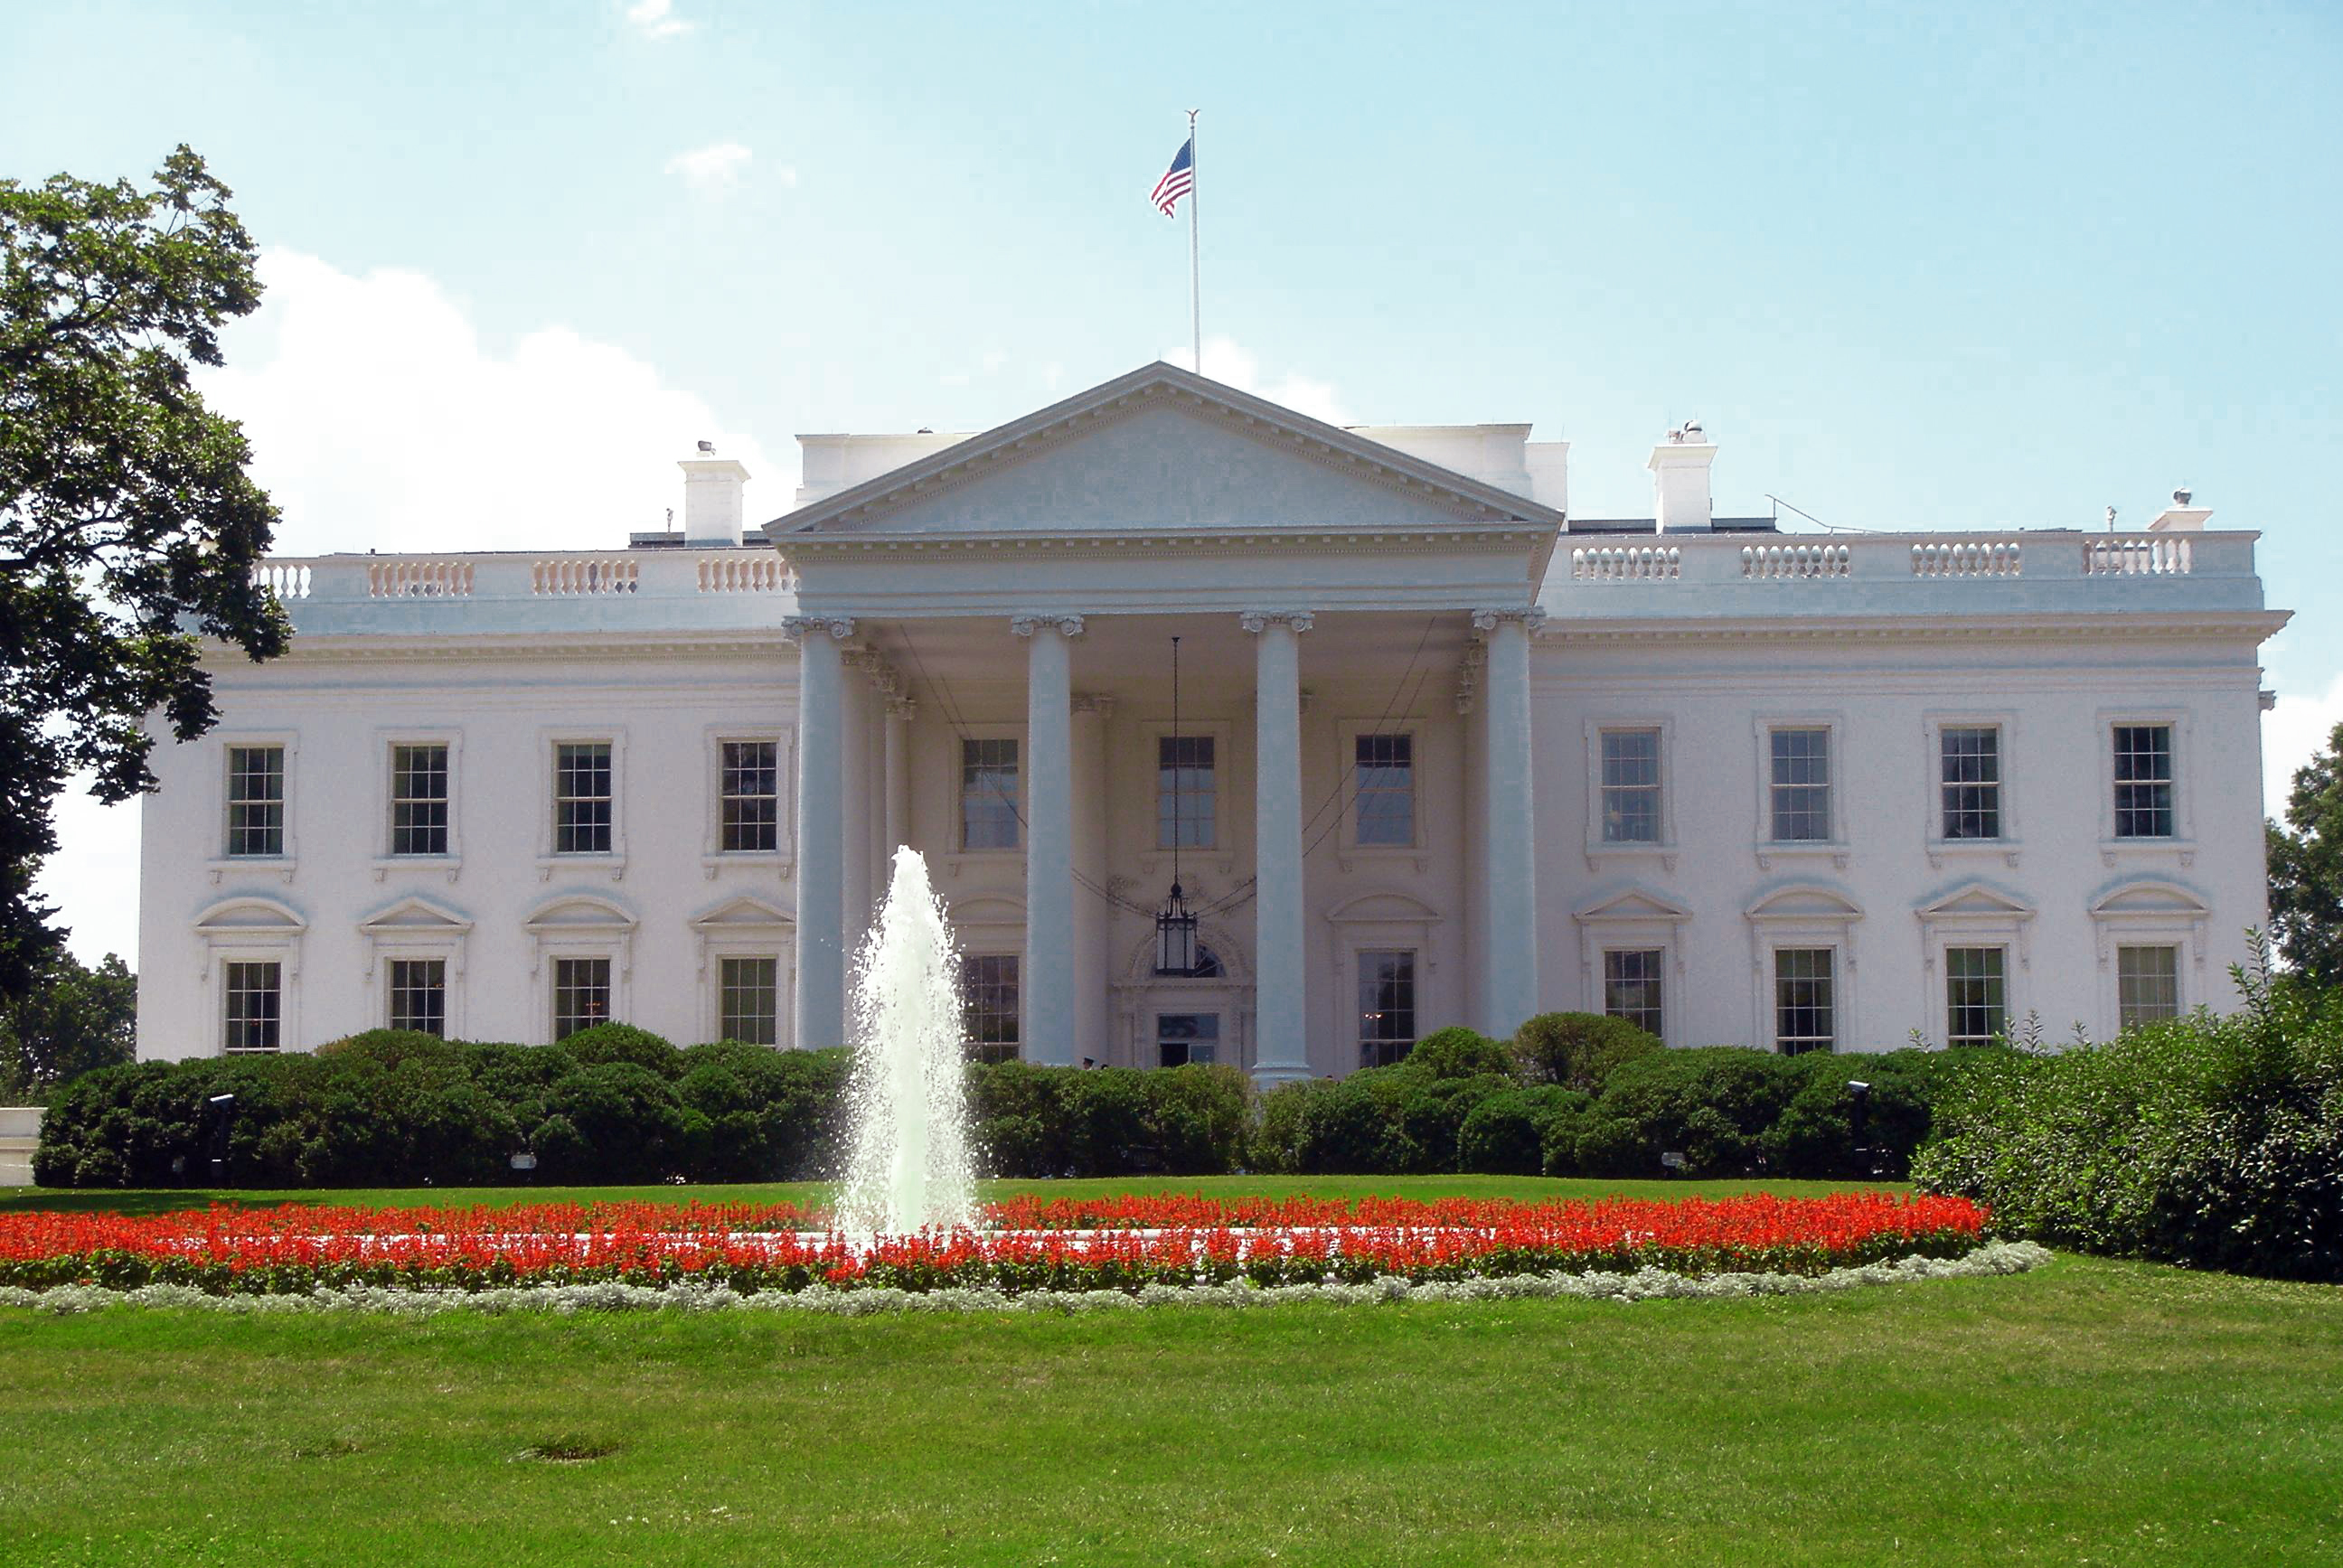 Stunning White House Washington DC 2592 x 1735 · 2215 kB · jpeg